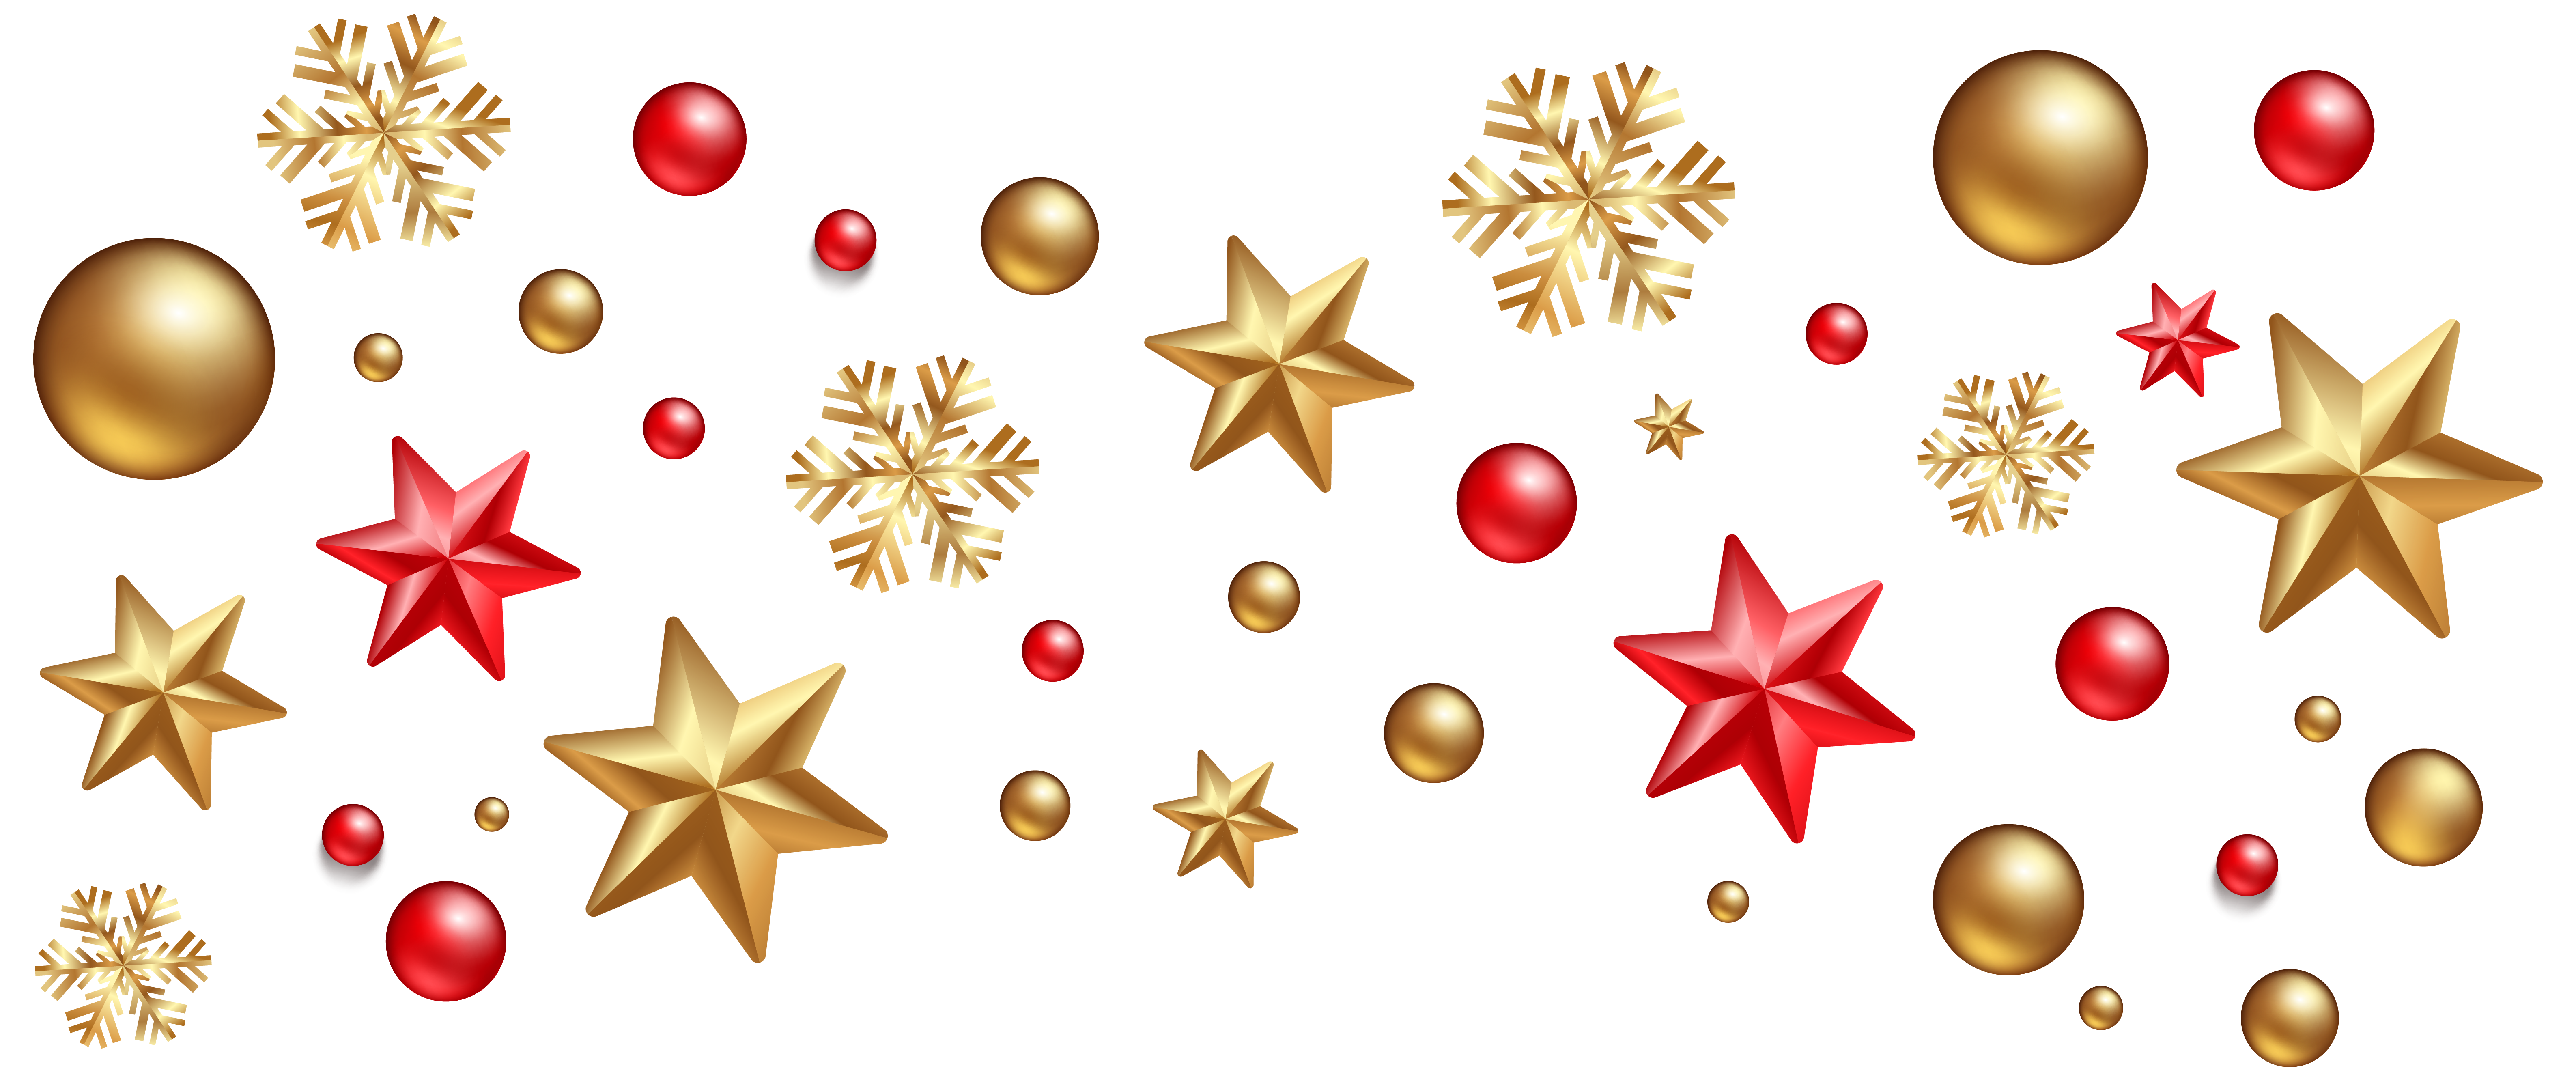 Decorations png image gallery. Florida clipart christmas